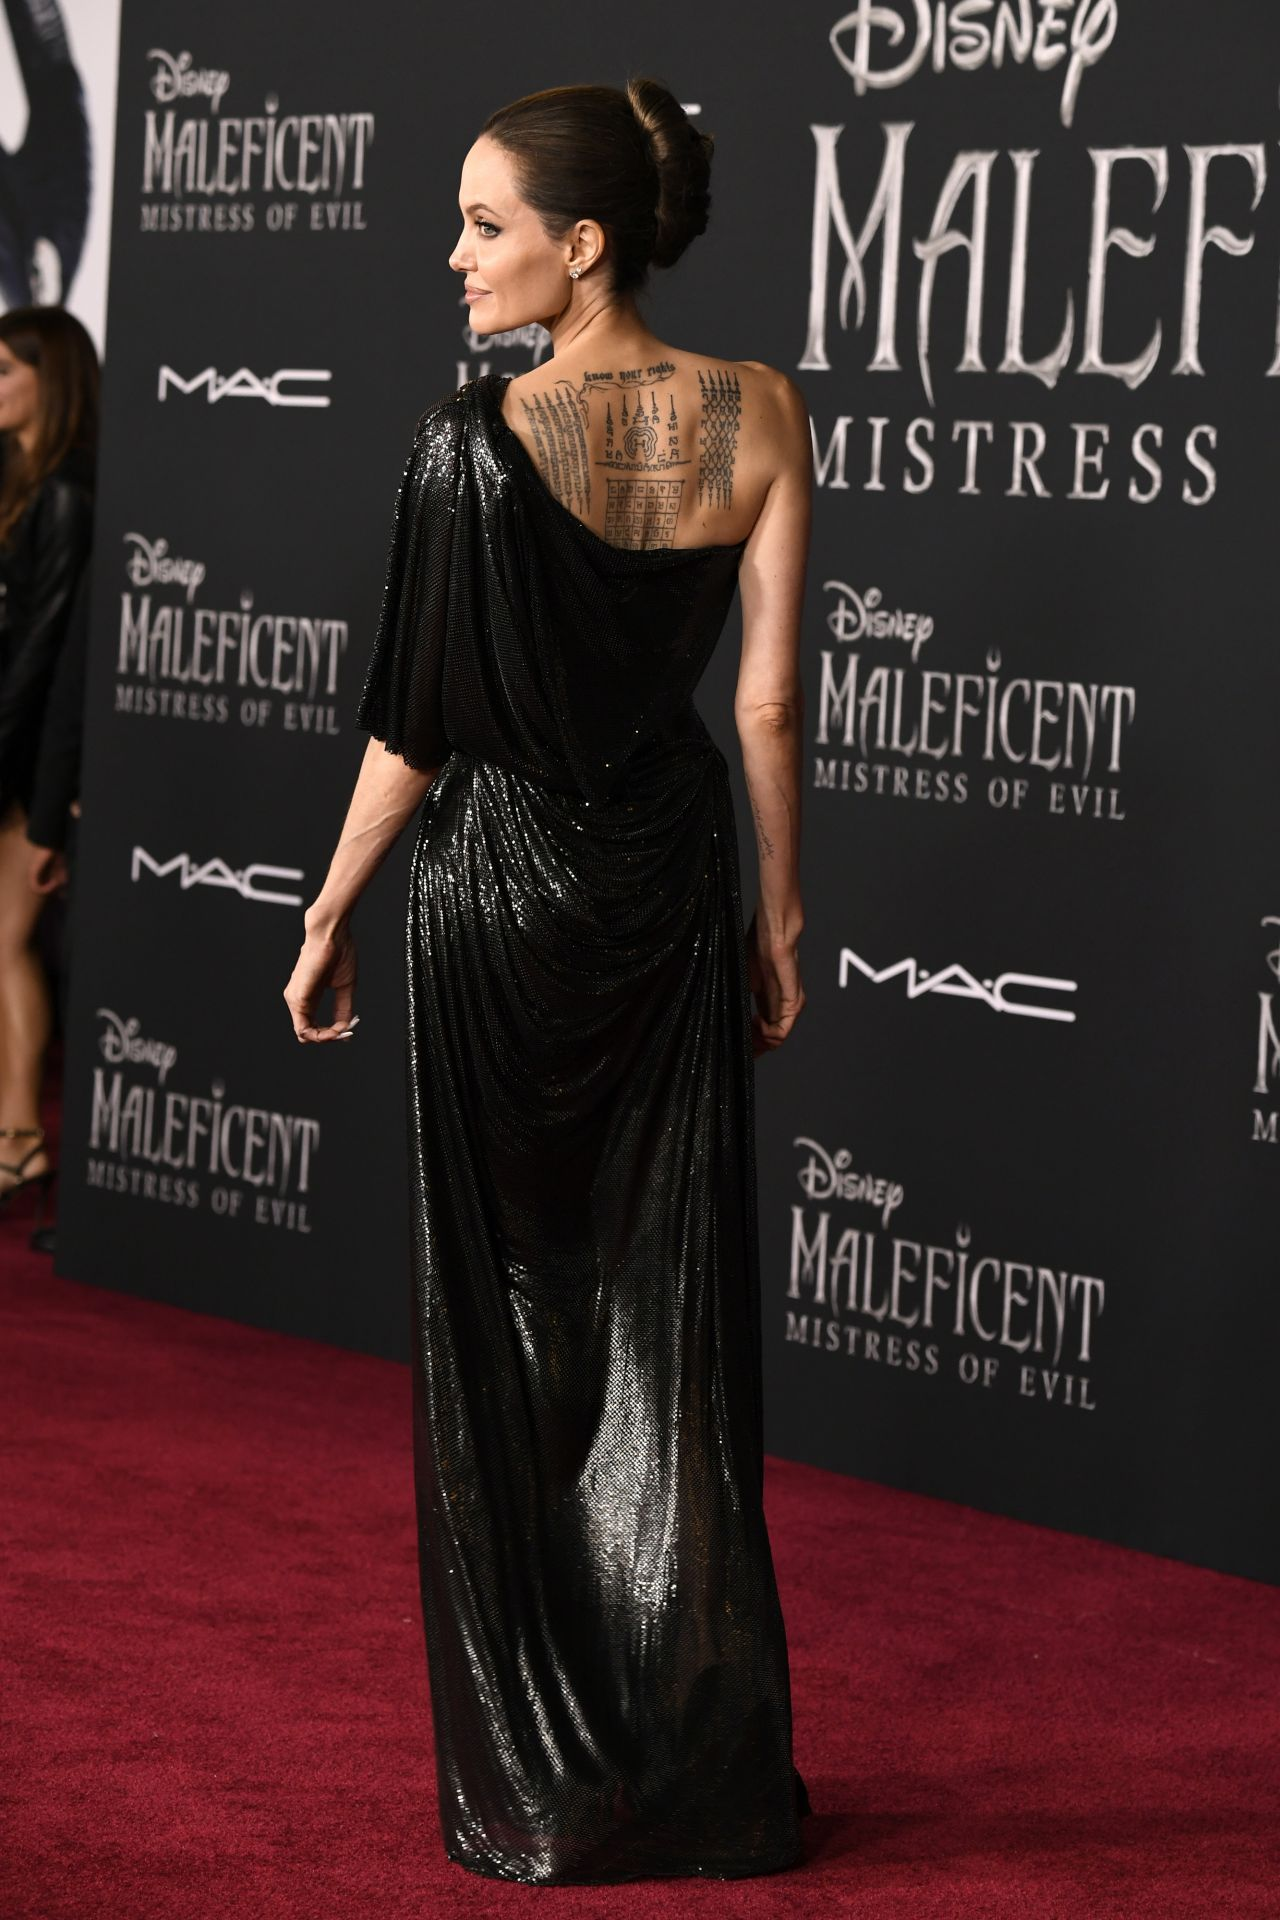 Angelina Jolie In A Black Dress Maleficent Mistress Of